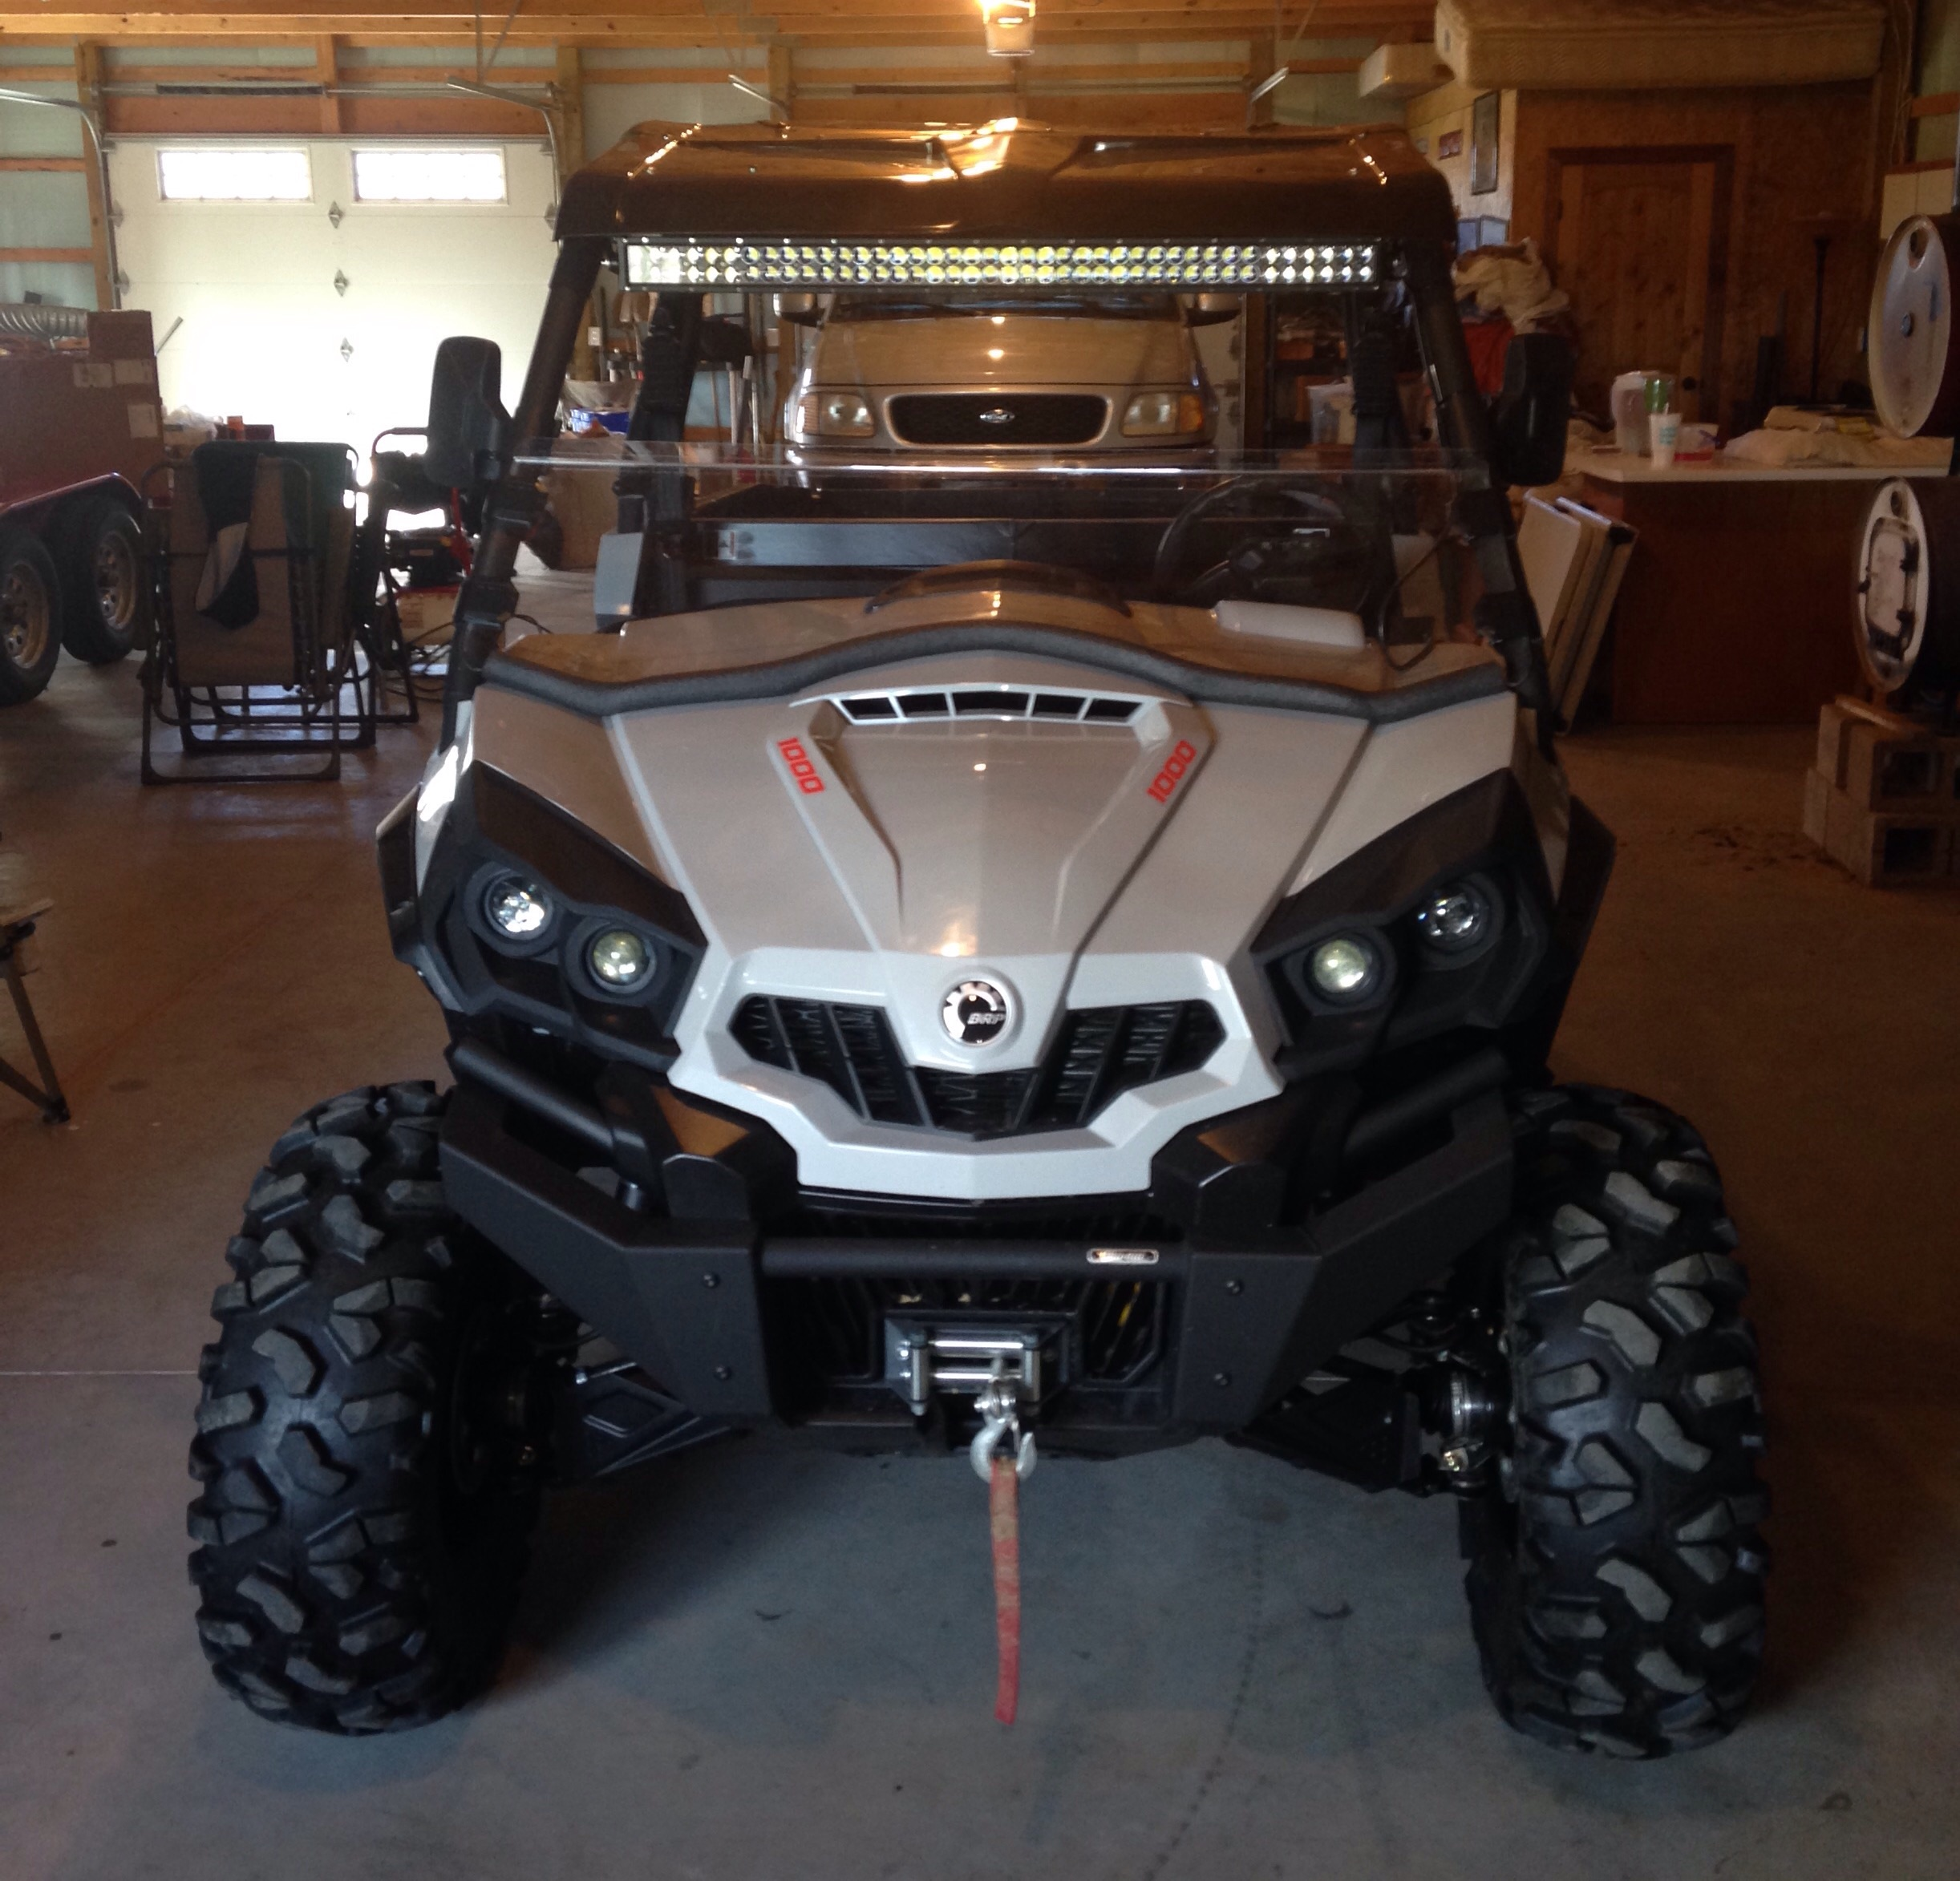 Post Up Pics Of Your Light Bar Or Led Light Placement